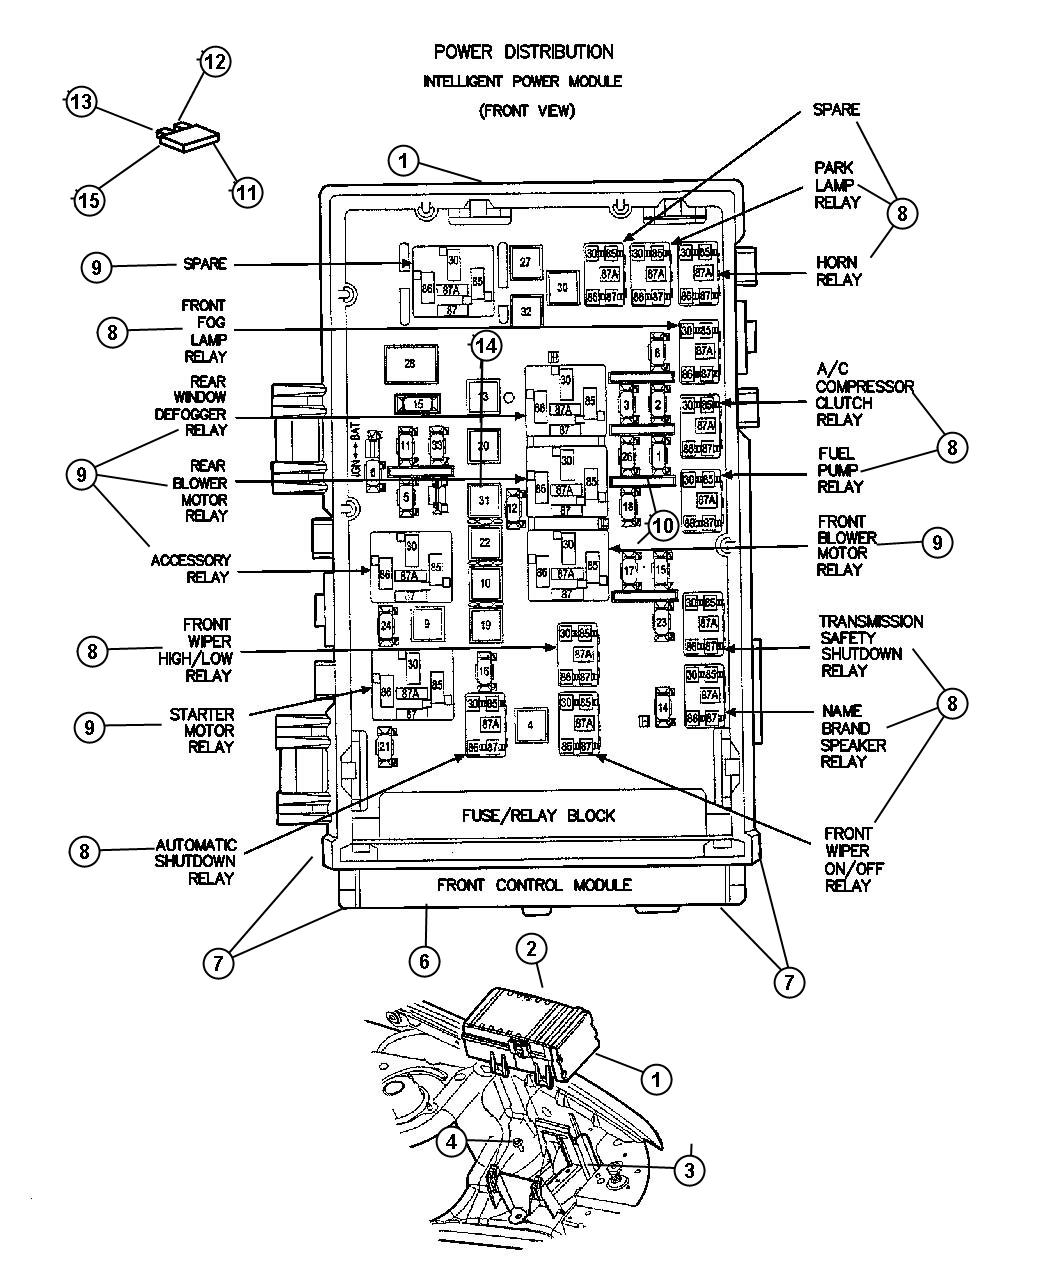 2000 grand caravan radio wiring diagram 2005 peterbilt 379 chrysler voyager fuse box library